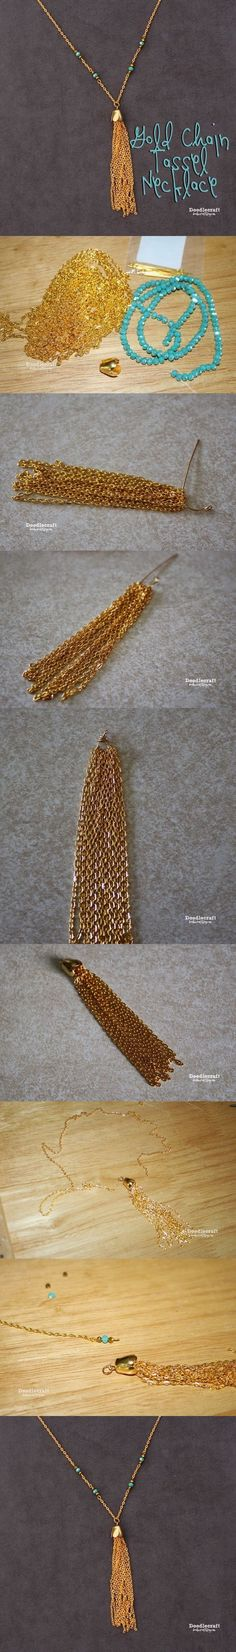 http://blog.pandahall.com/2016/01/easy-tutorial-on-tassel-necklace-with-gold-chain/